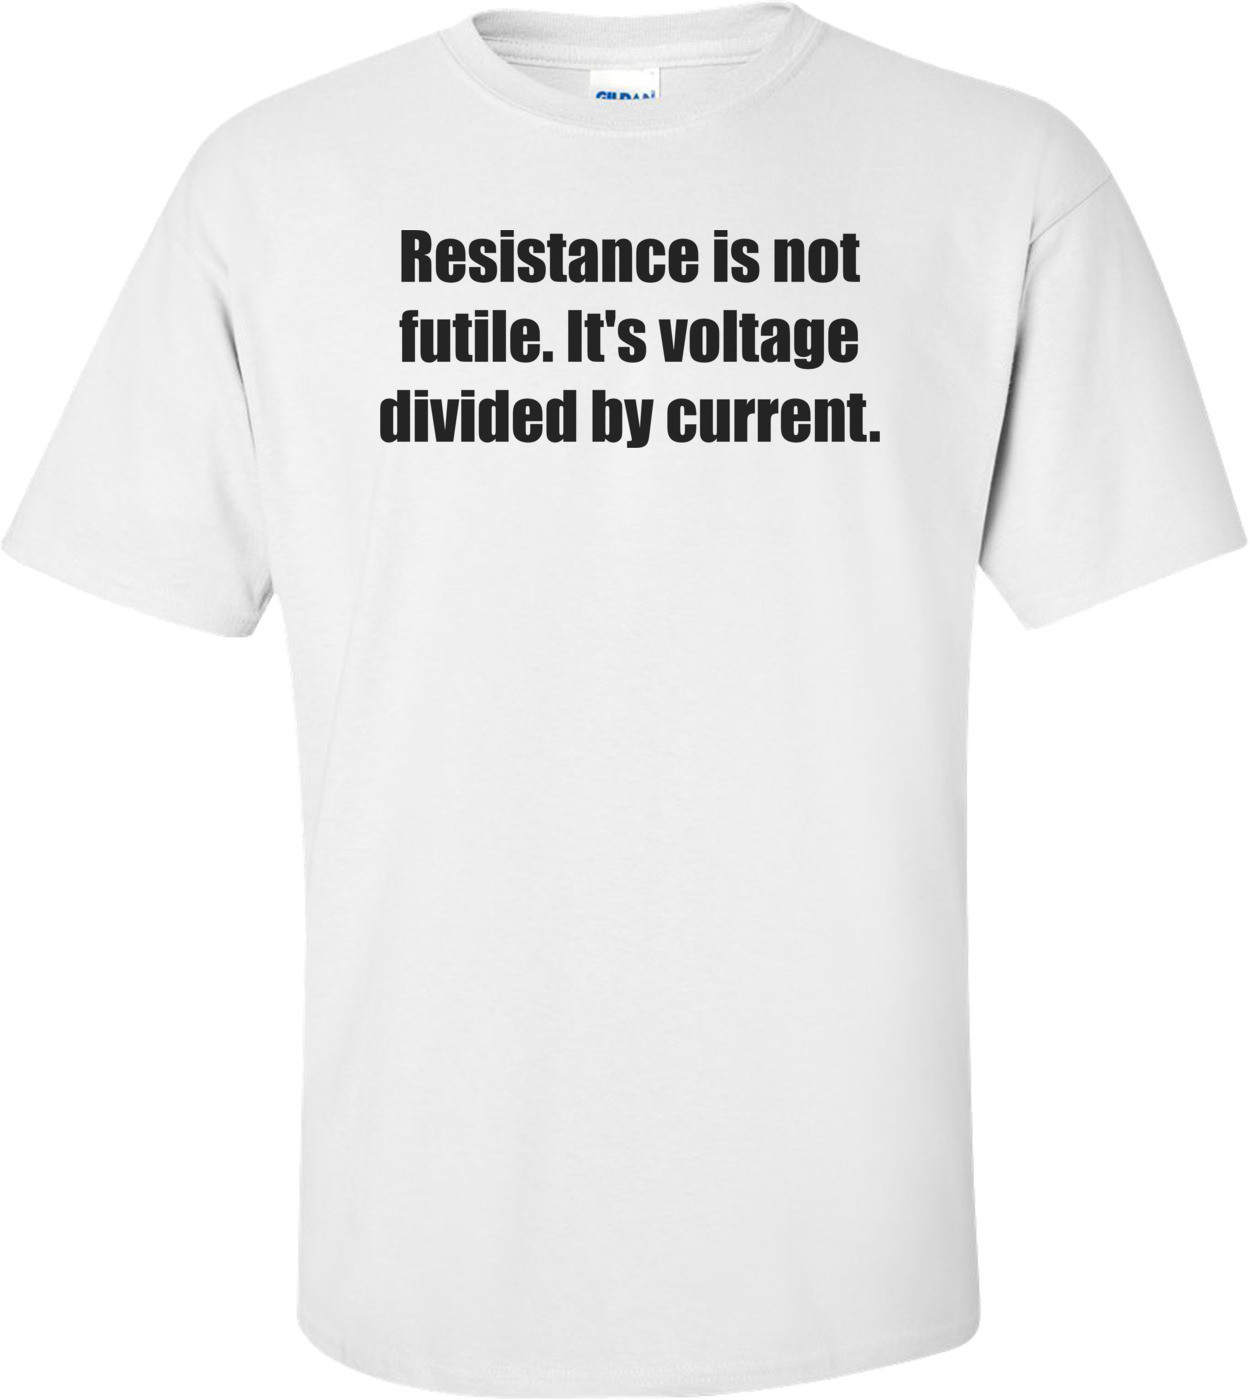 Resistance is not futile. It's voltage divided by current. Shirt